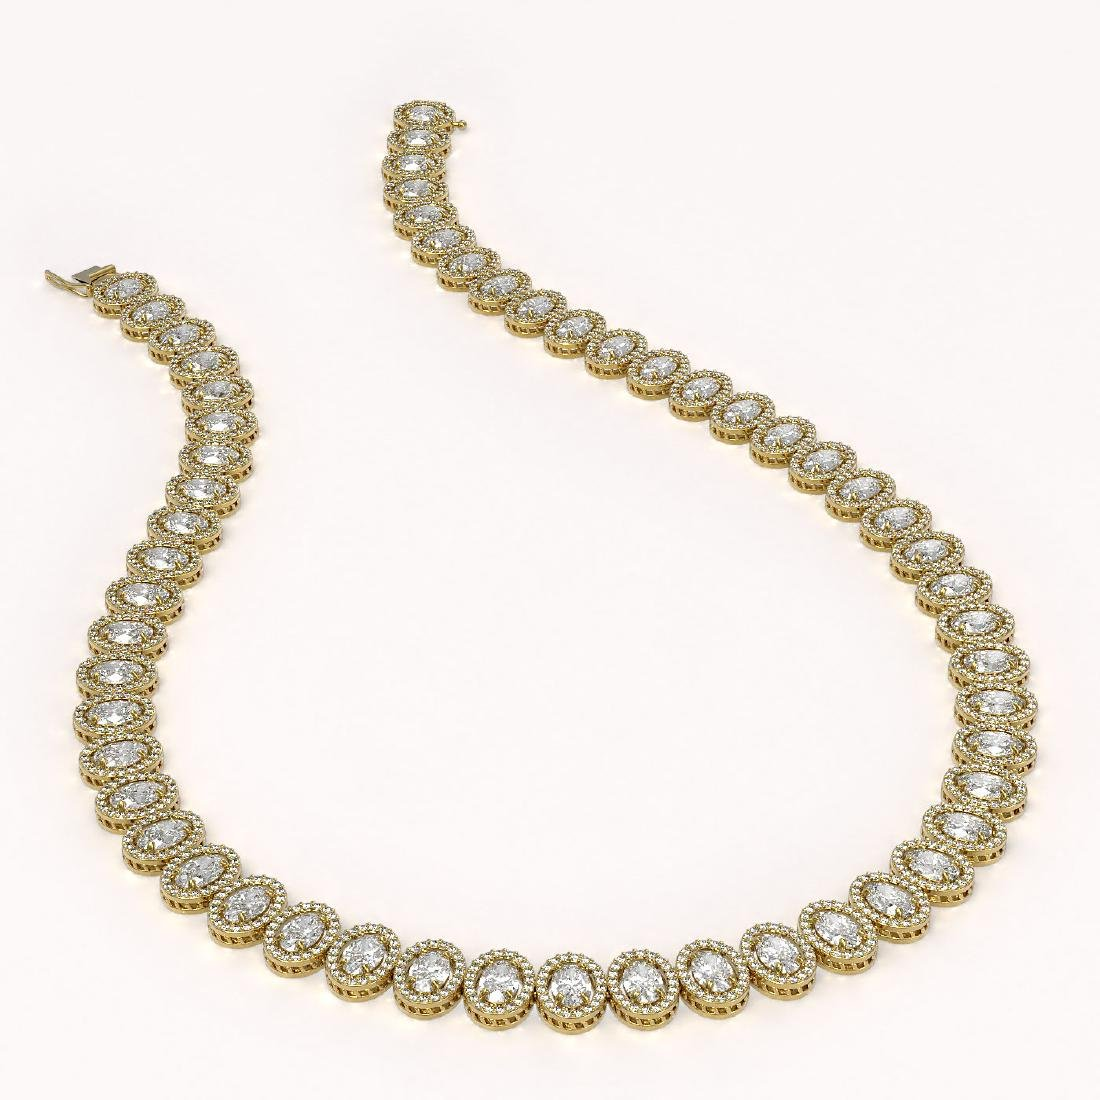 42.56 CTW Oval Diamond Designer Necklace 18K Yellow - 2